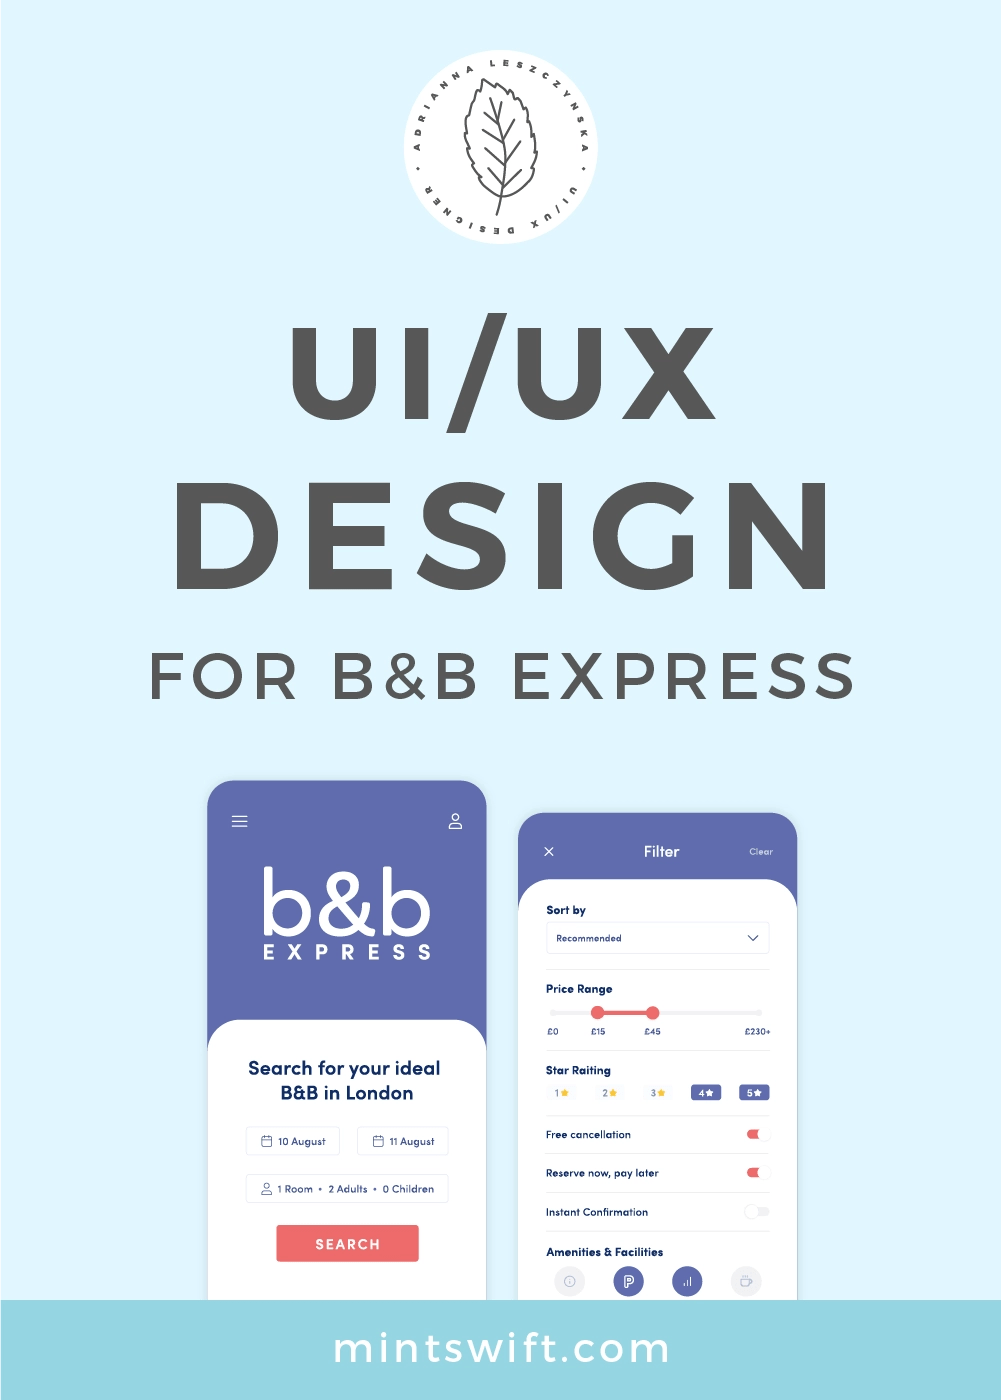 UI/UX Design for B&B Express App a bed & breakfast booking app in London UK. UI/UX project including User Research, Branding, UI & UX Design